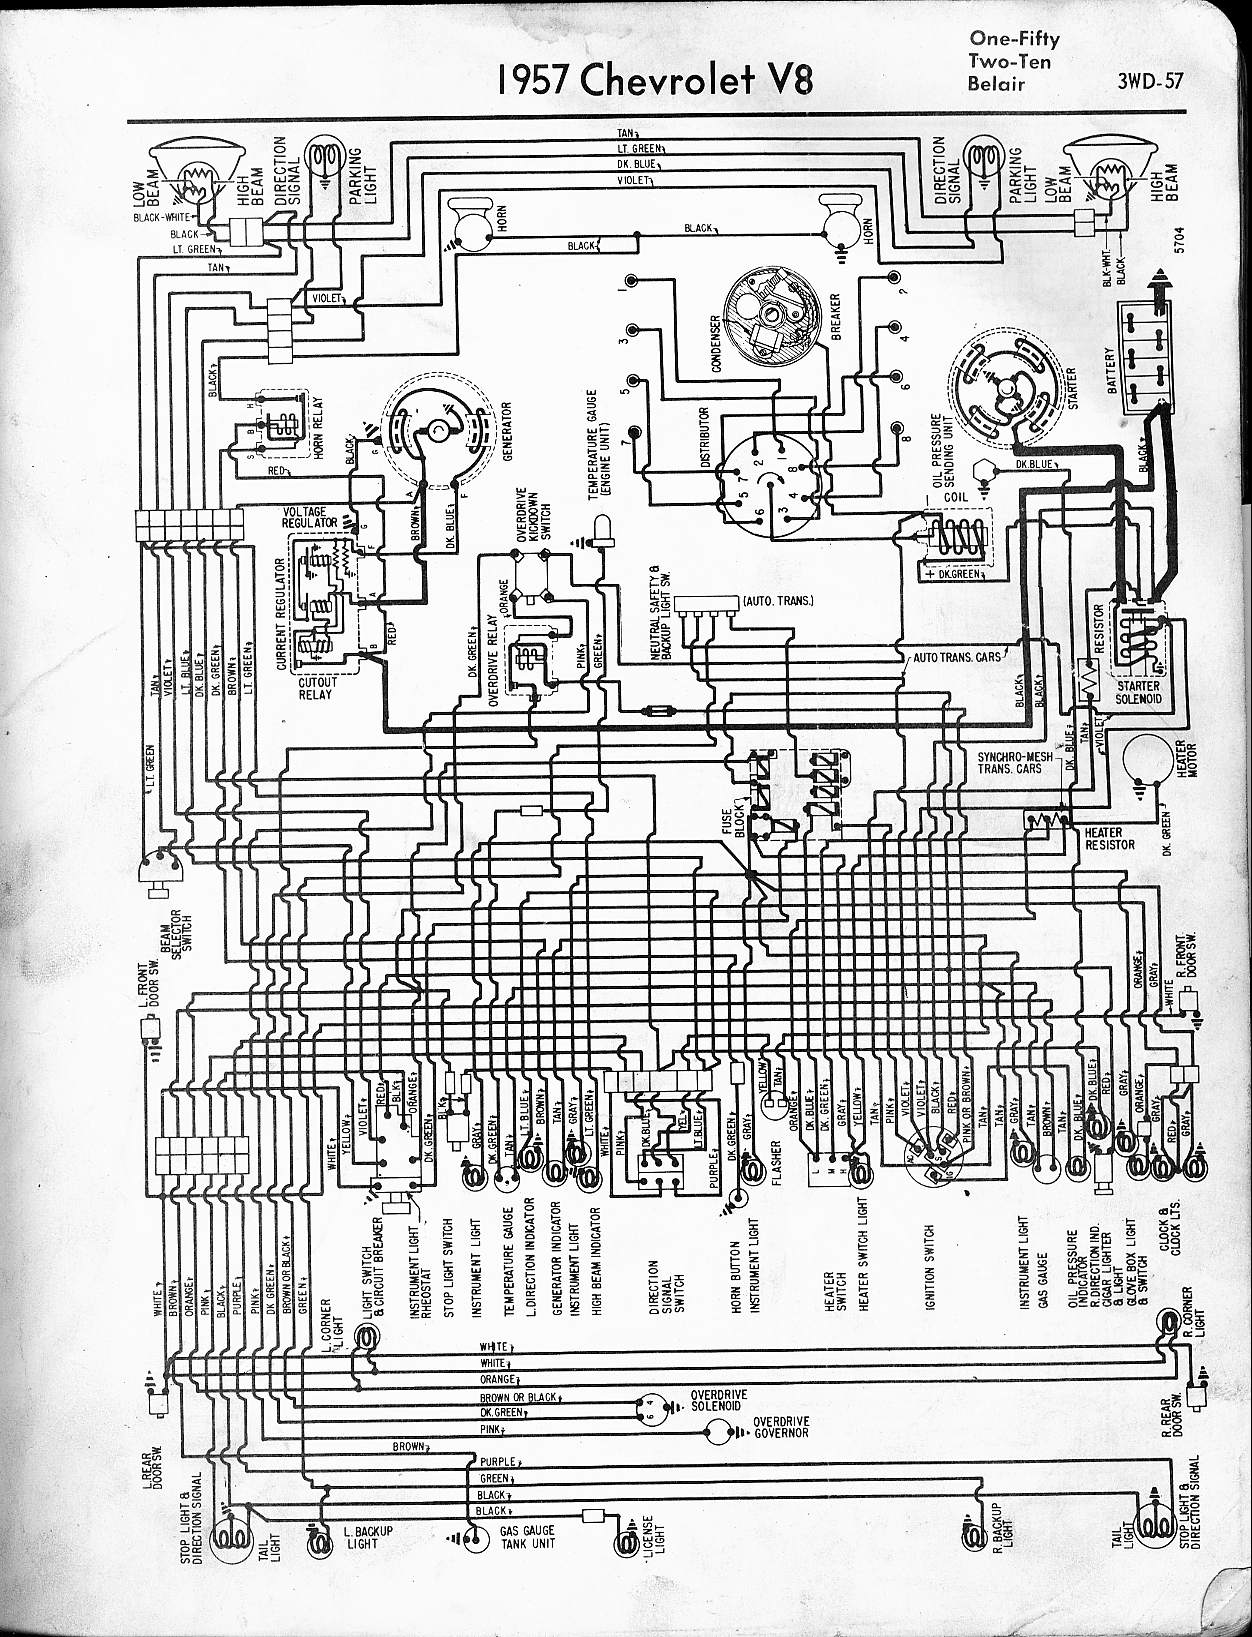 MWireChev57_3WD 057 57 65 chevy wiring diagrams 1957 chevy bel air wiring harness at edmiracle.co